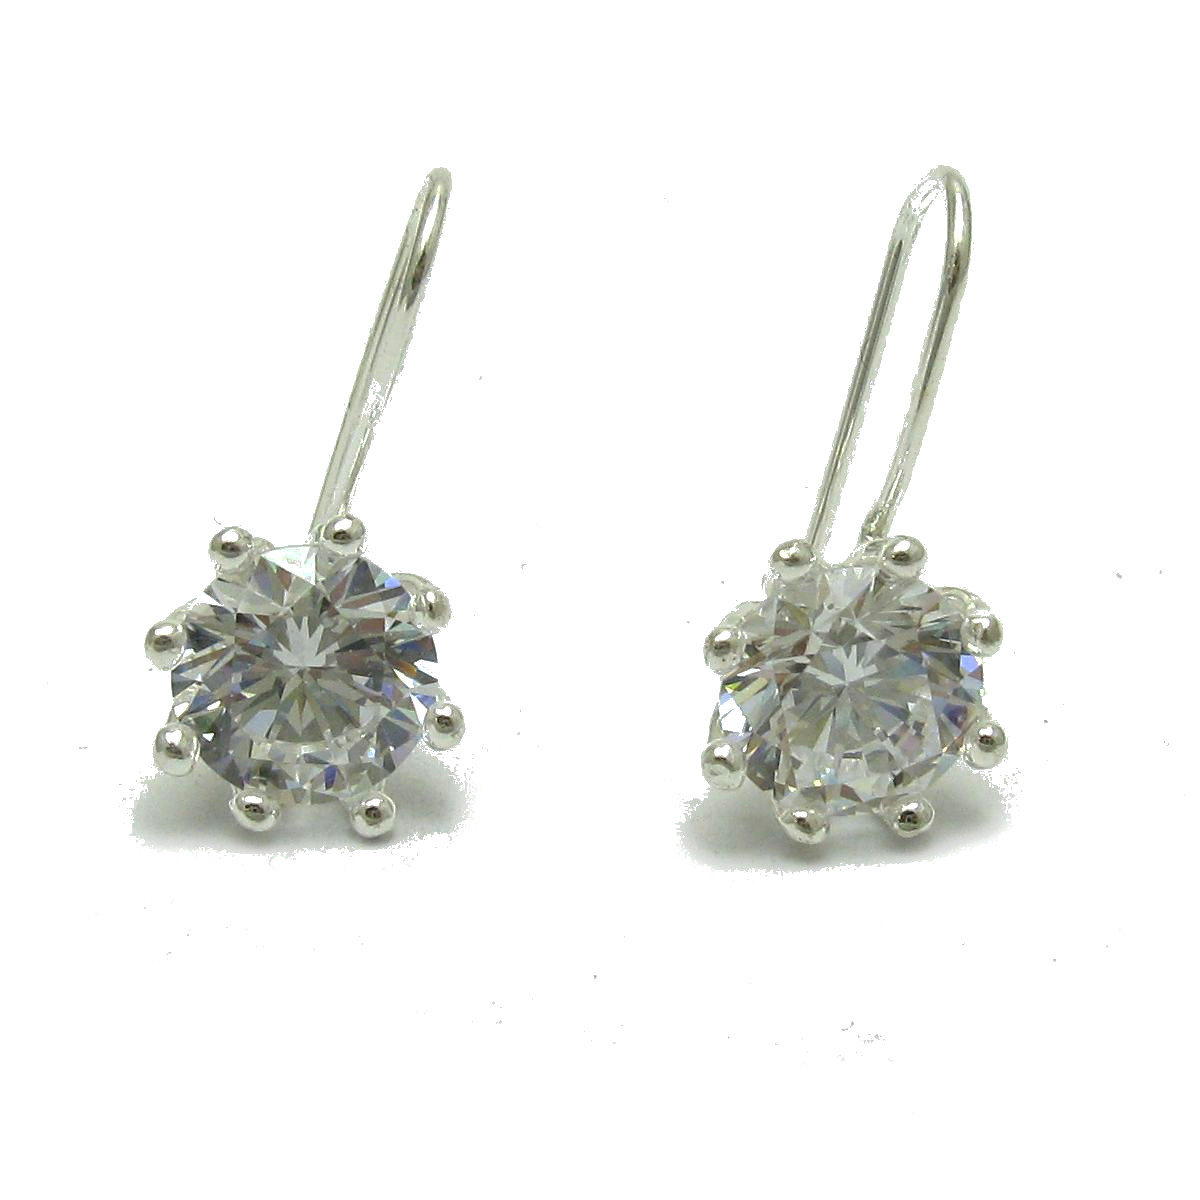 Silver earrings - E000693